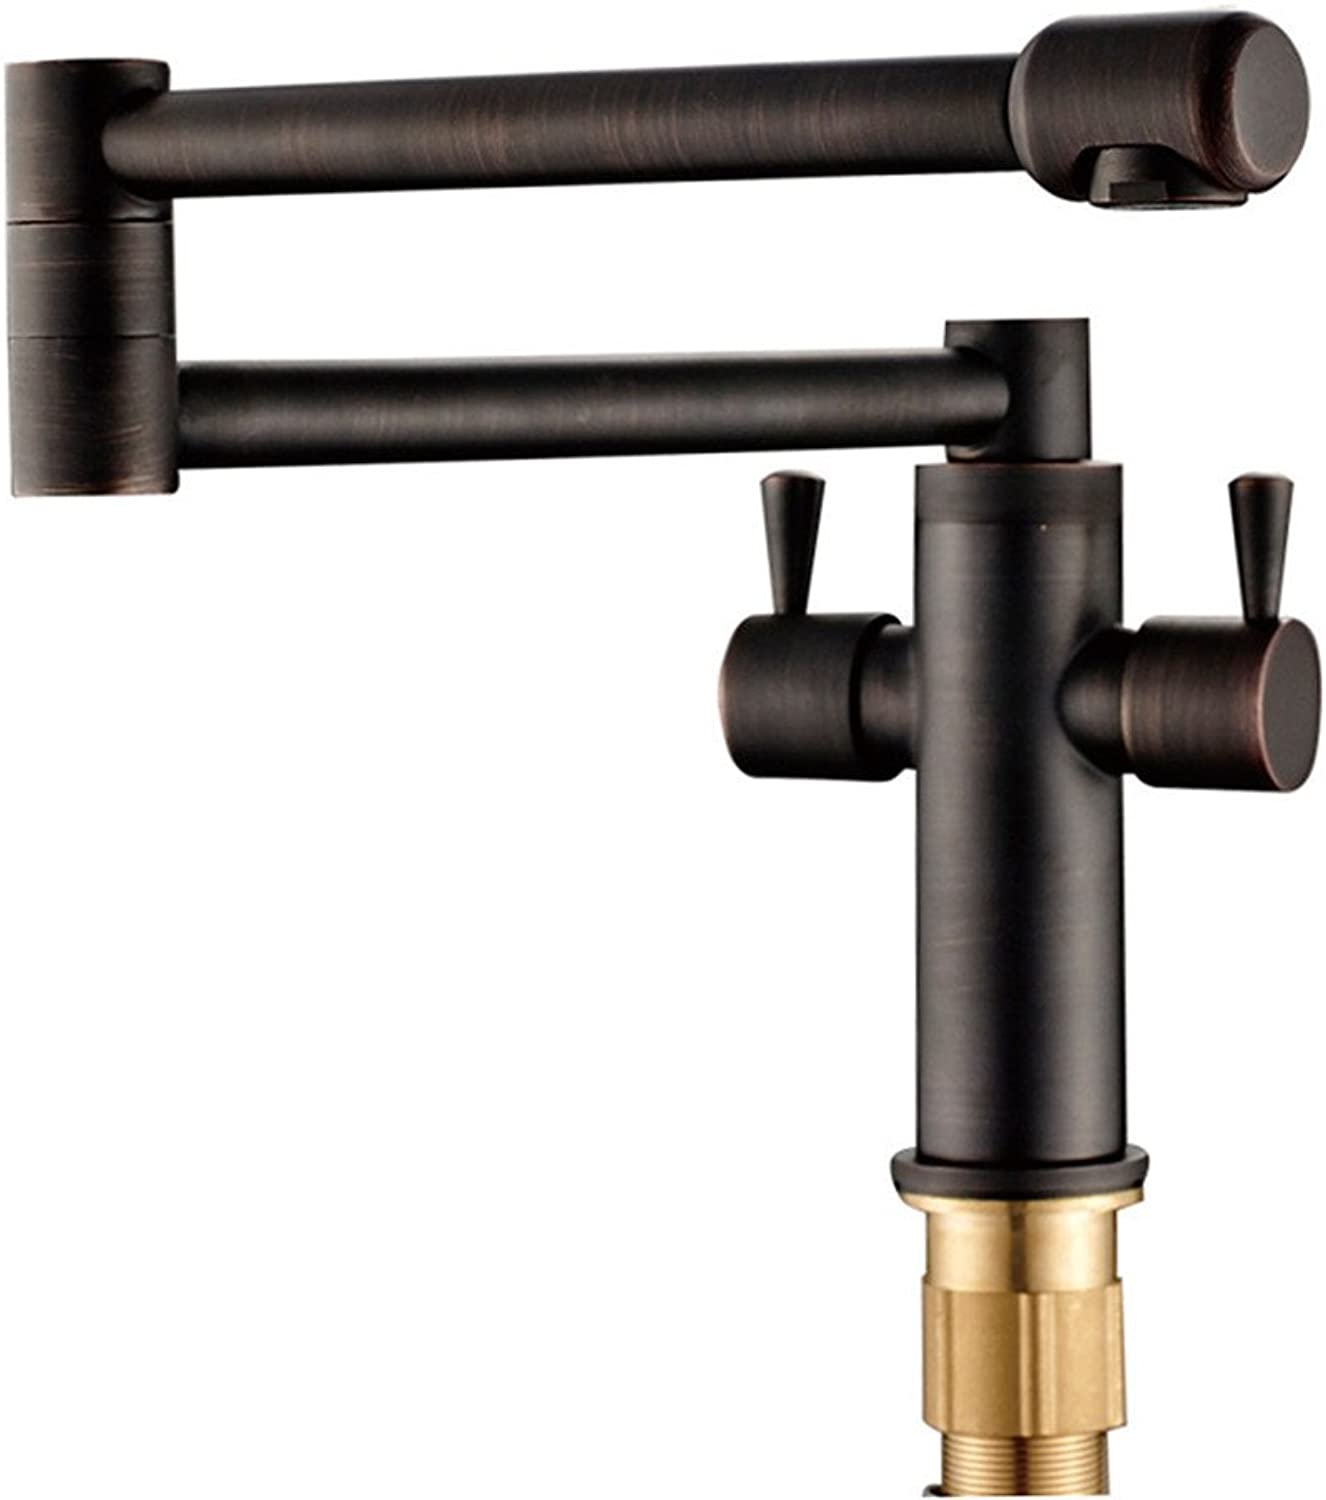 Commercial Single Lever Pull Down Kitchen Sink Faucet Brass Constructed Polished European Antique Faucet Brushed Black Bronze Kitchen Folding Faucet Copper Black Black Antique Basin Faucet